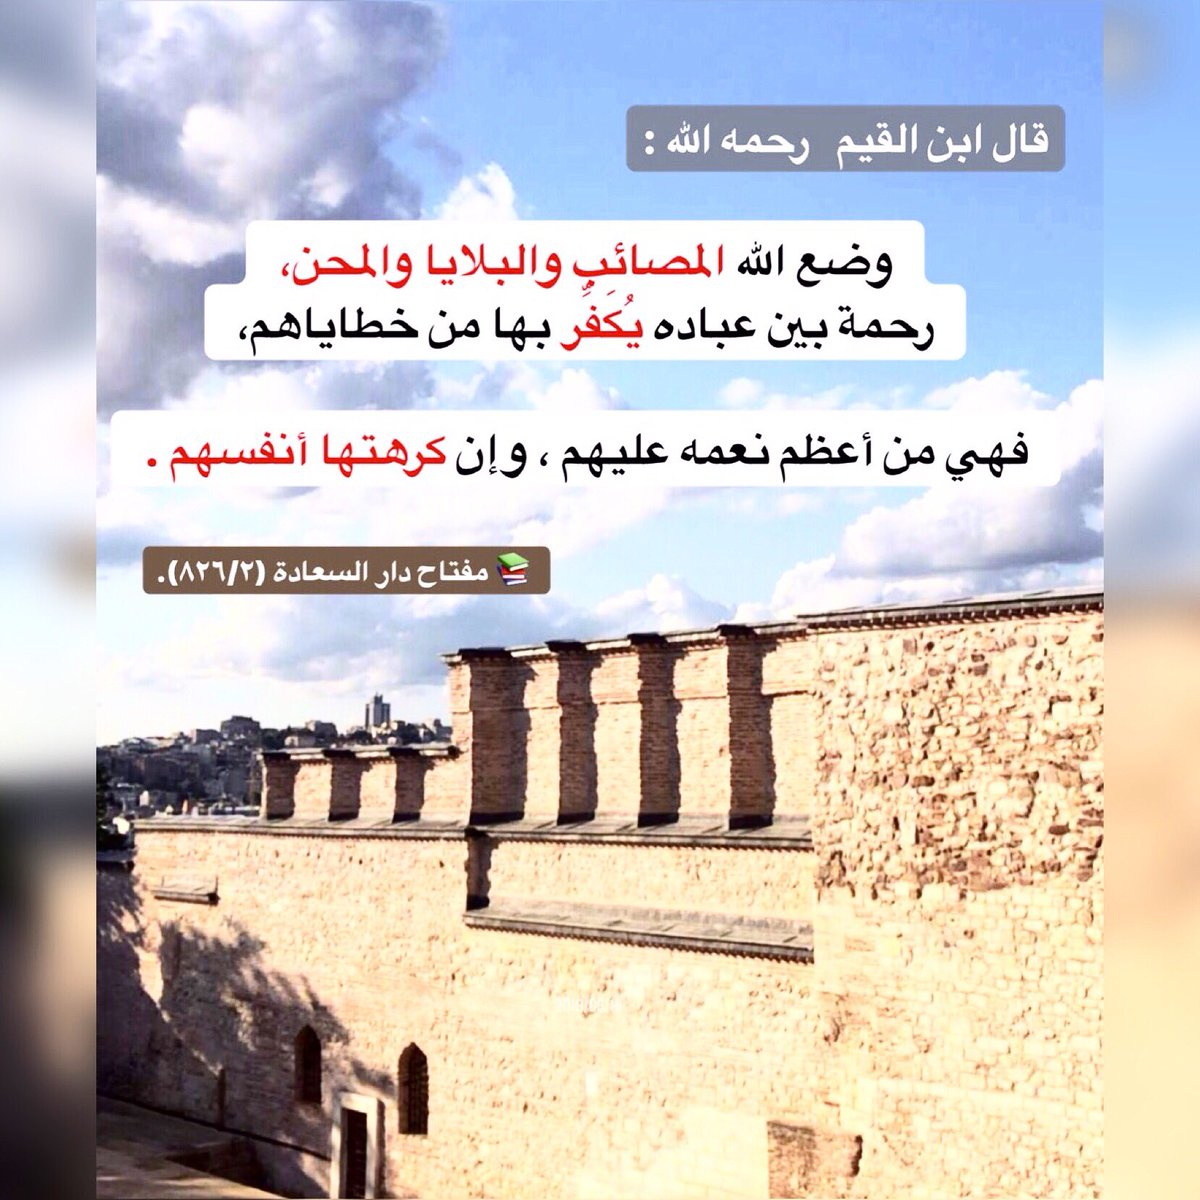 Pin By أستغفرالله On ديني Islam 7